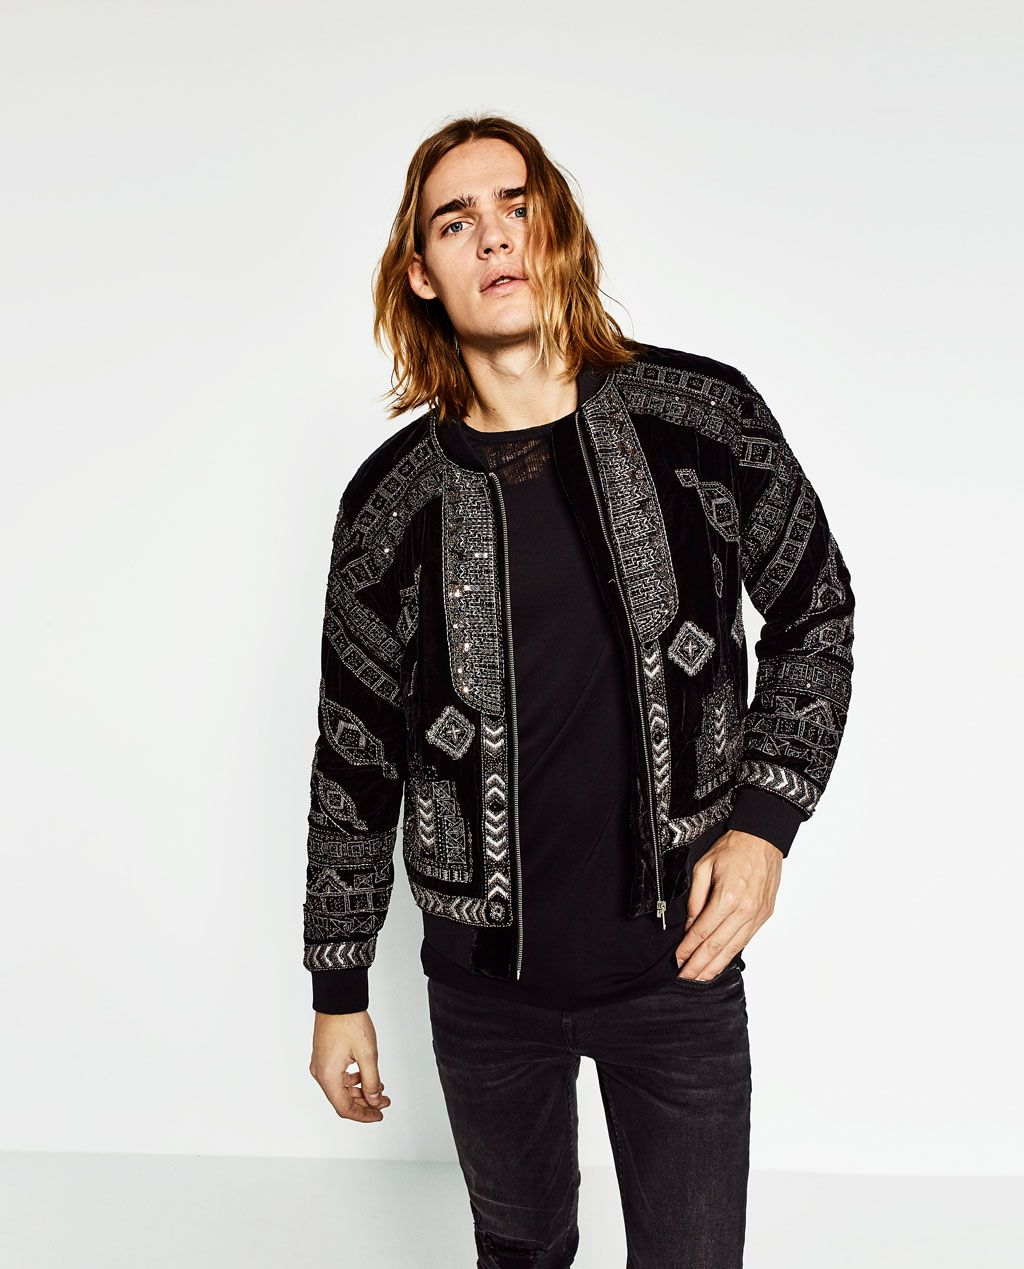 BOMBER JACKET WITH METALLIC DETAILS from Zara Homme